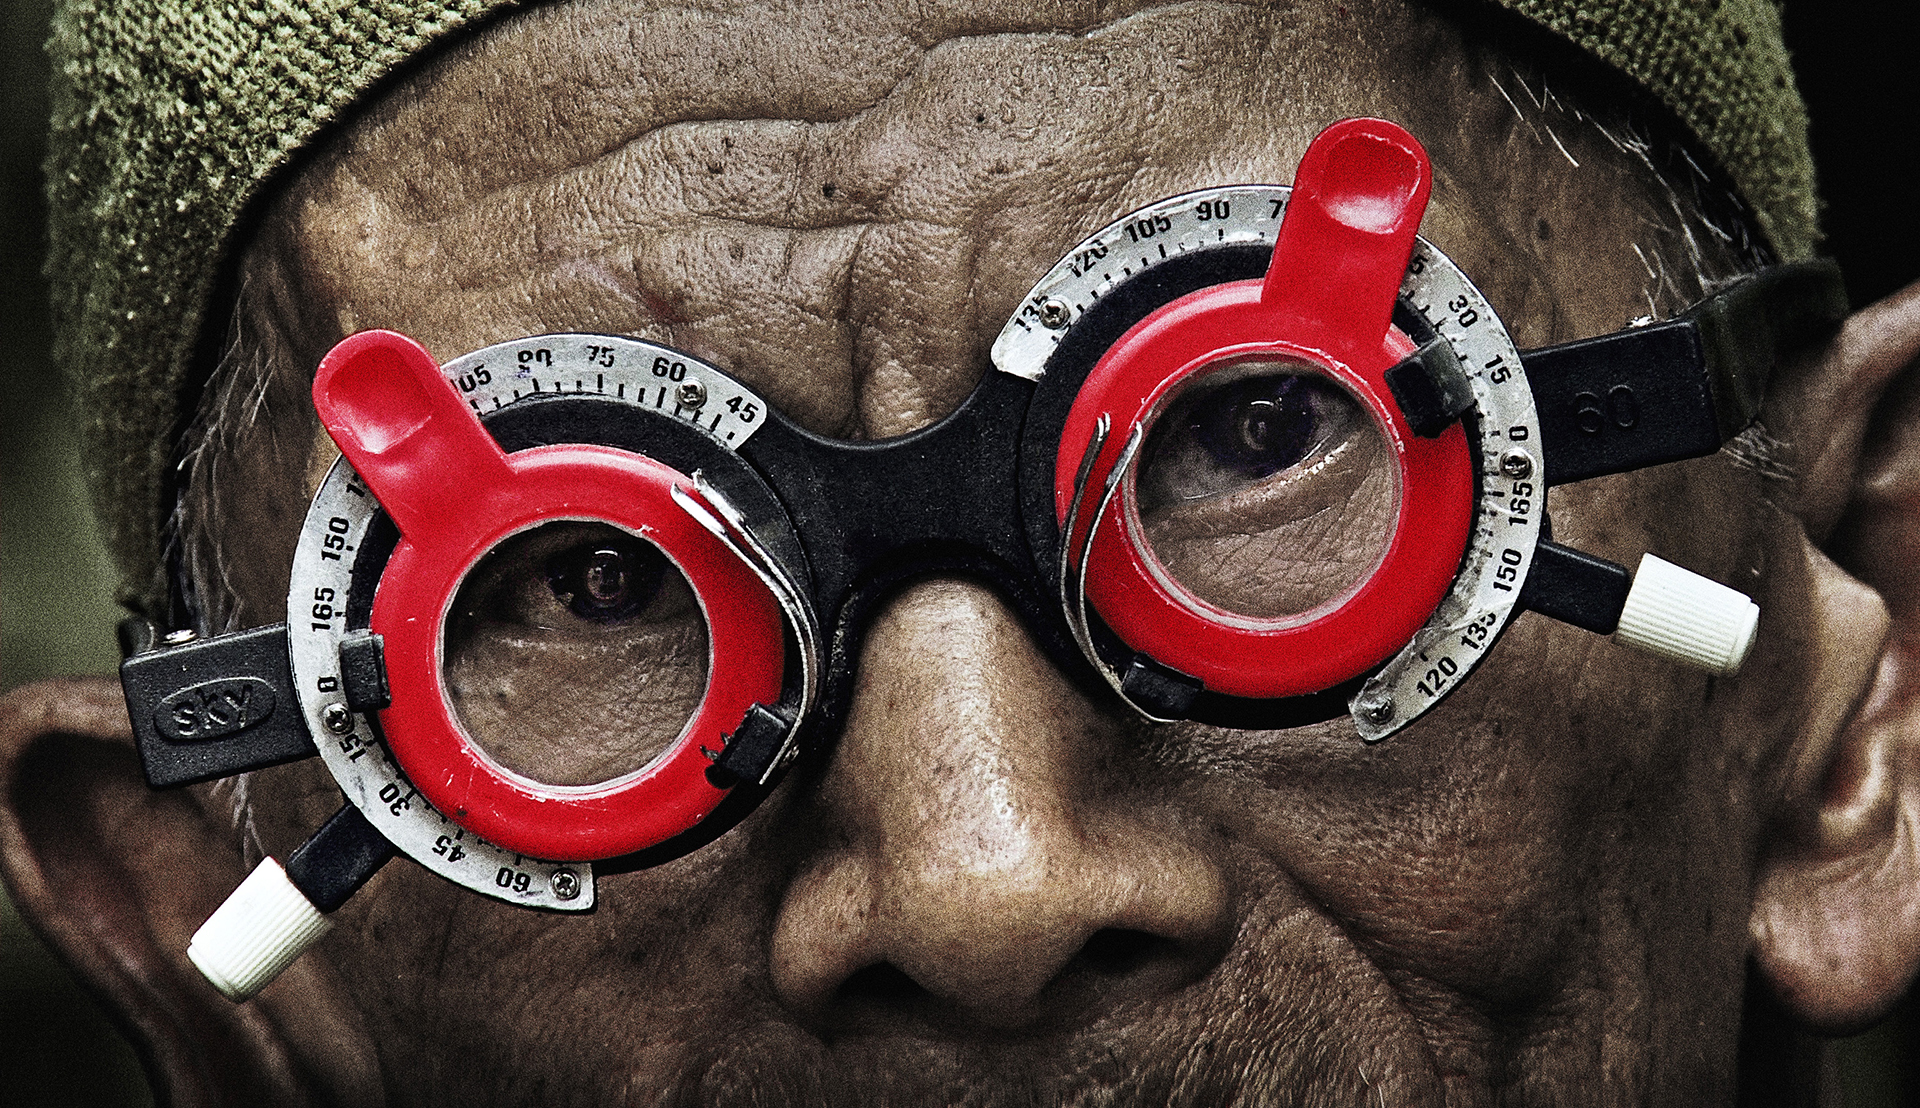 Joshua Oppenheimer's The Look of Silence shortlisted for EFA awards